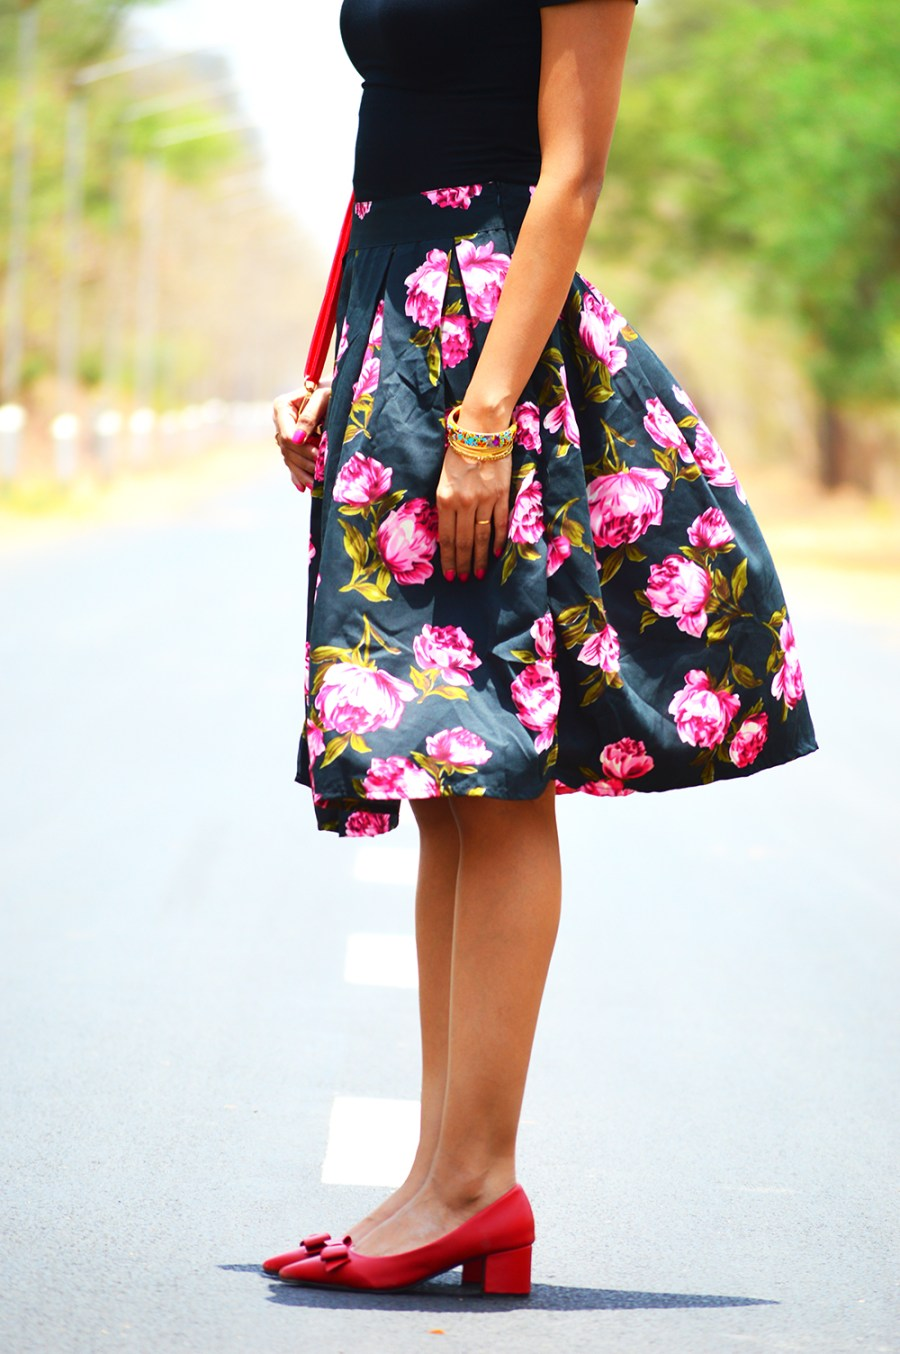 Fashion, Style, Fashion Bloggers, Indian Fashion Blogger, Street Style, Summer Fashion, Floral Midi Skirt, Crop top, Fashion Photography, Bohemian Fashion- 4